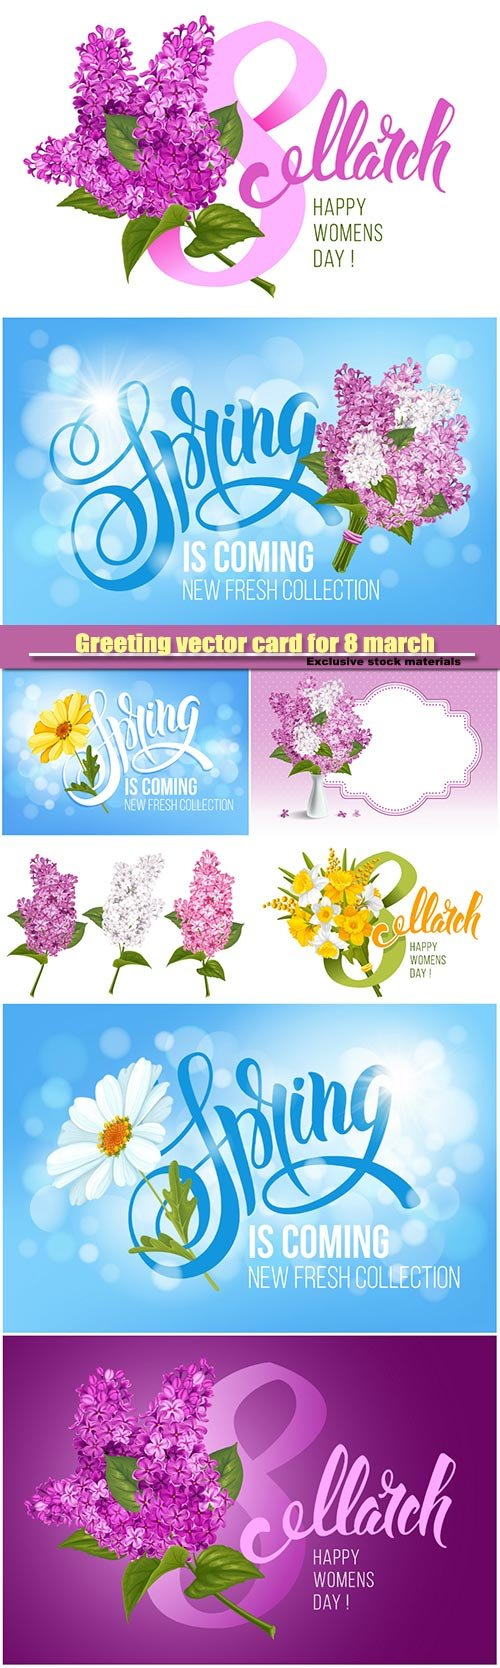 Greeting vector card for 8 march, womens day